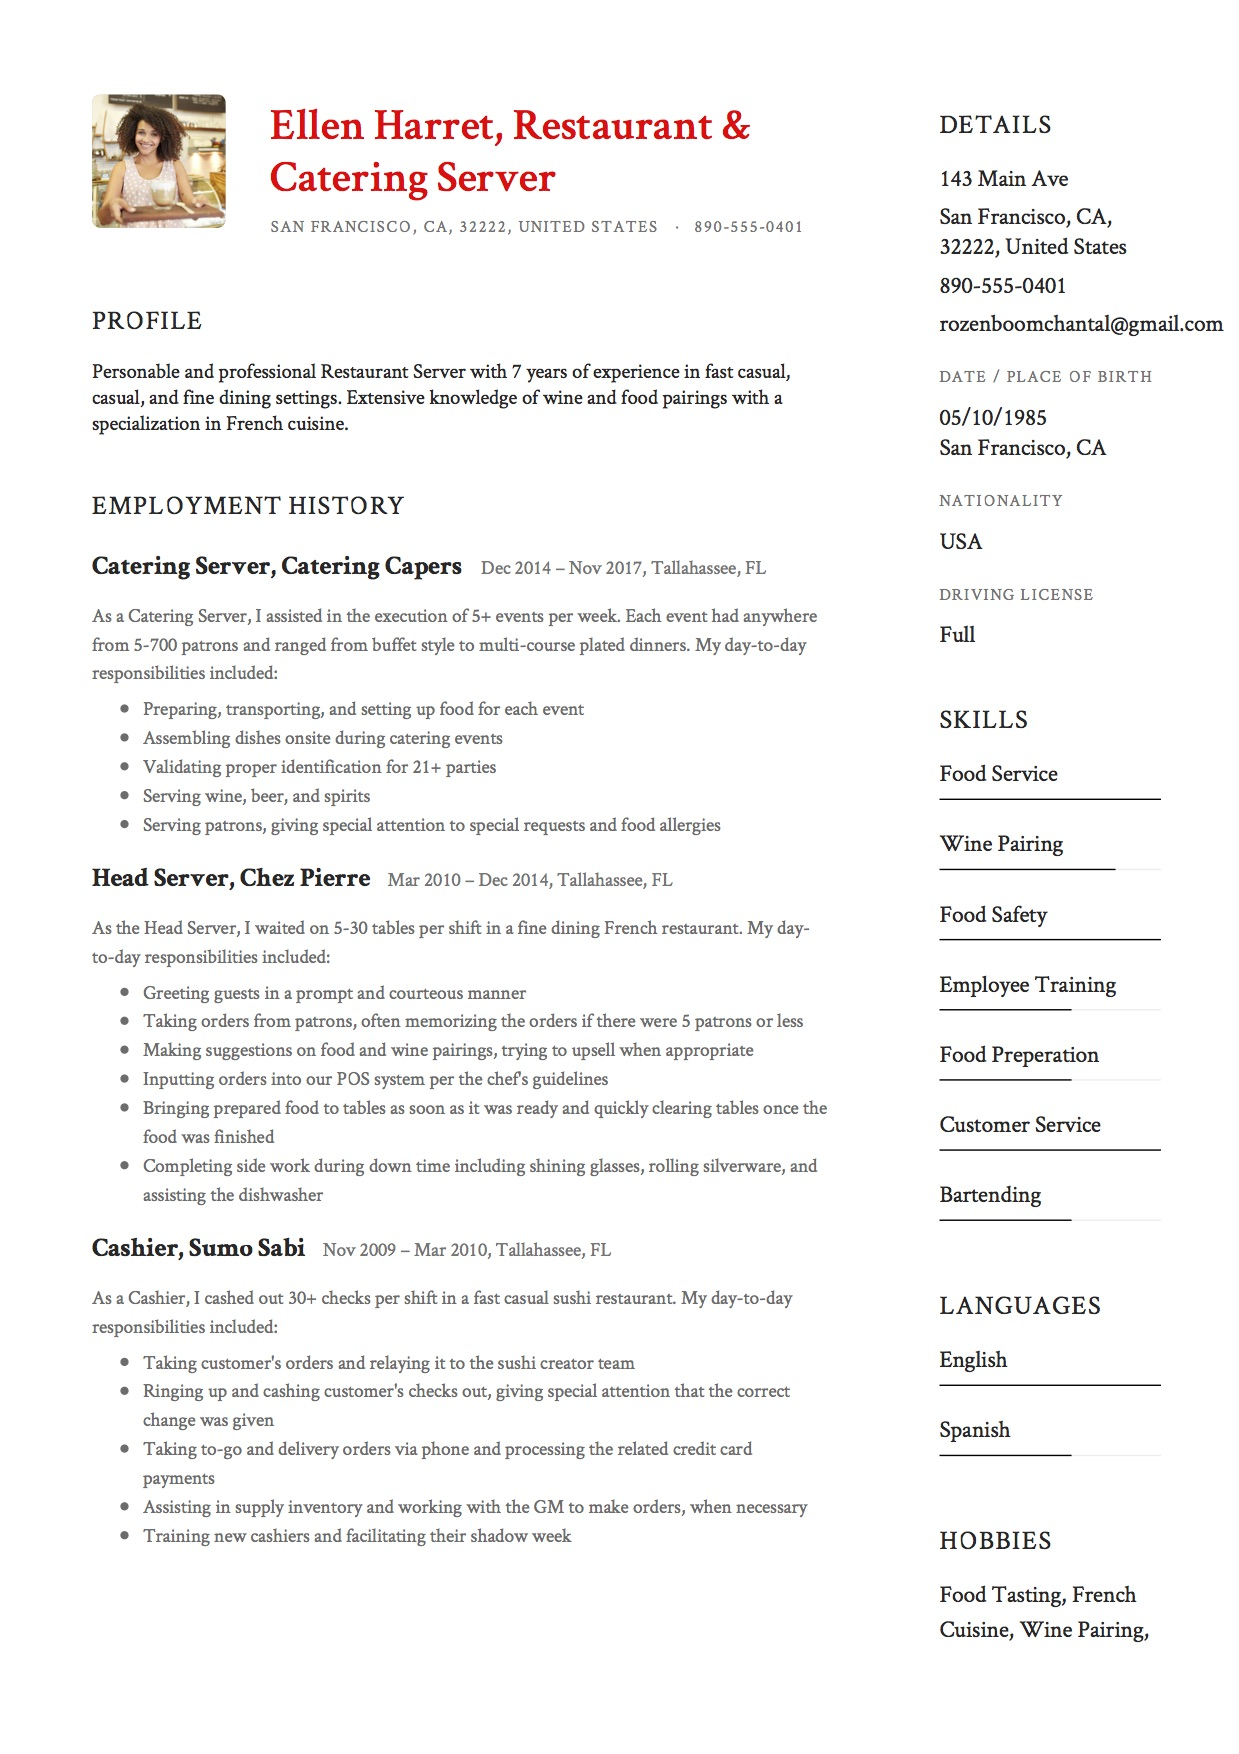 12 Restaurant Server Resume Sample(s) - 2018 (Free Downloads)